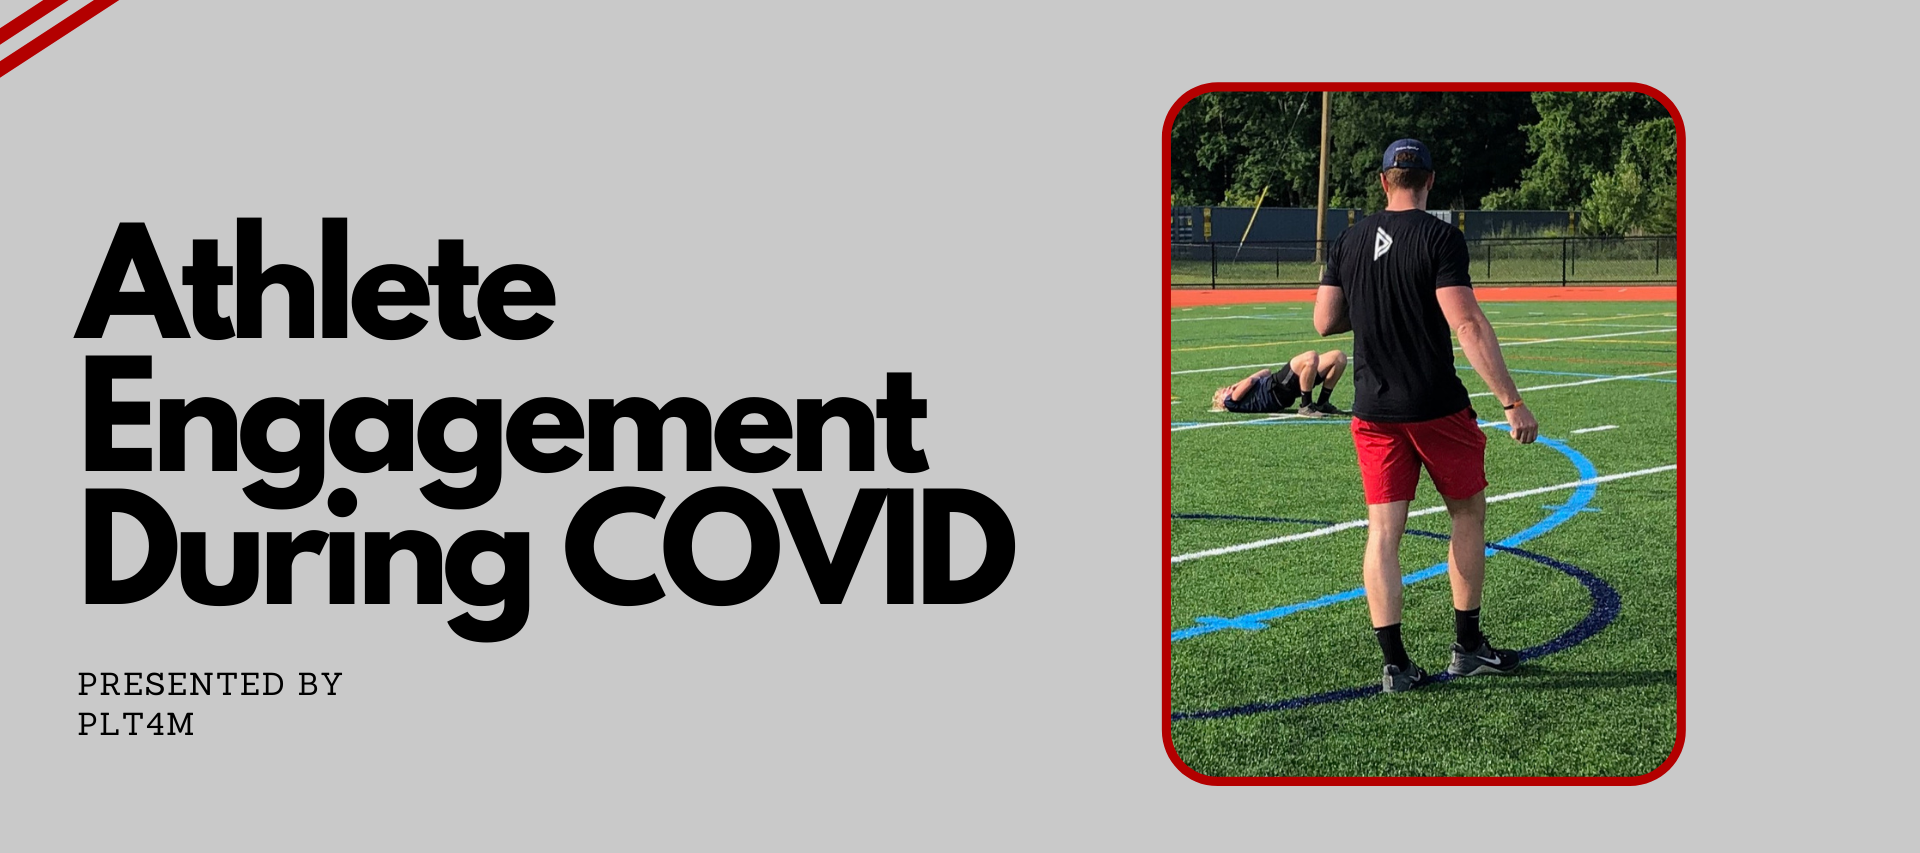 Athlete Engagement During COVID